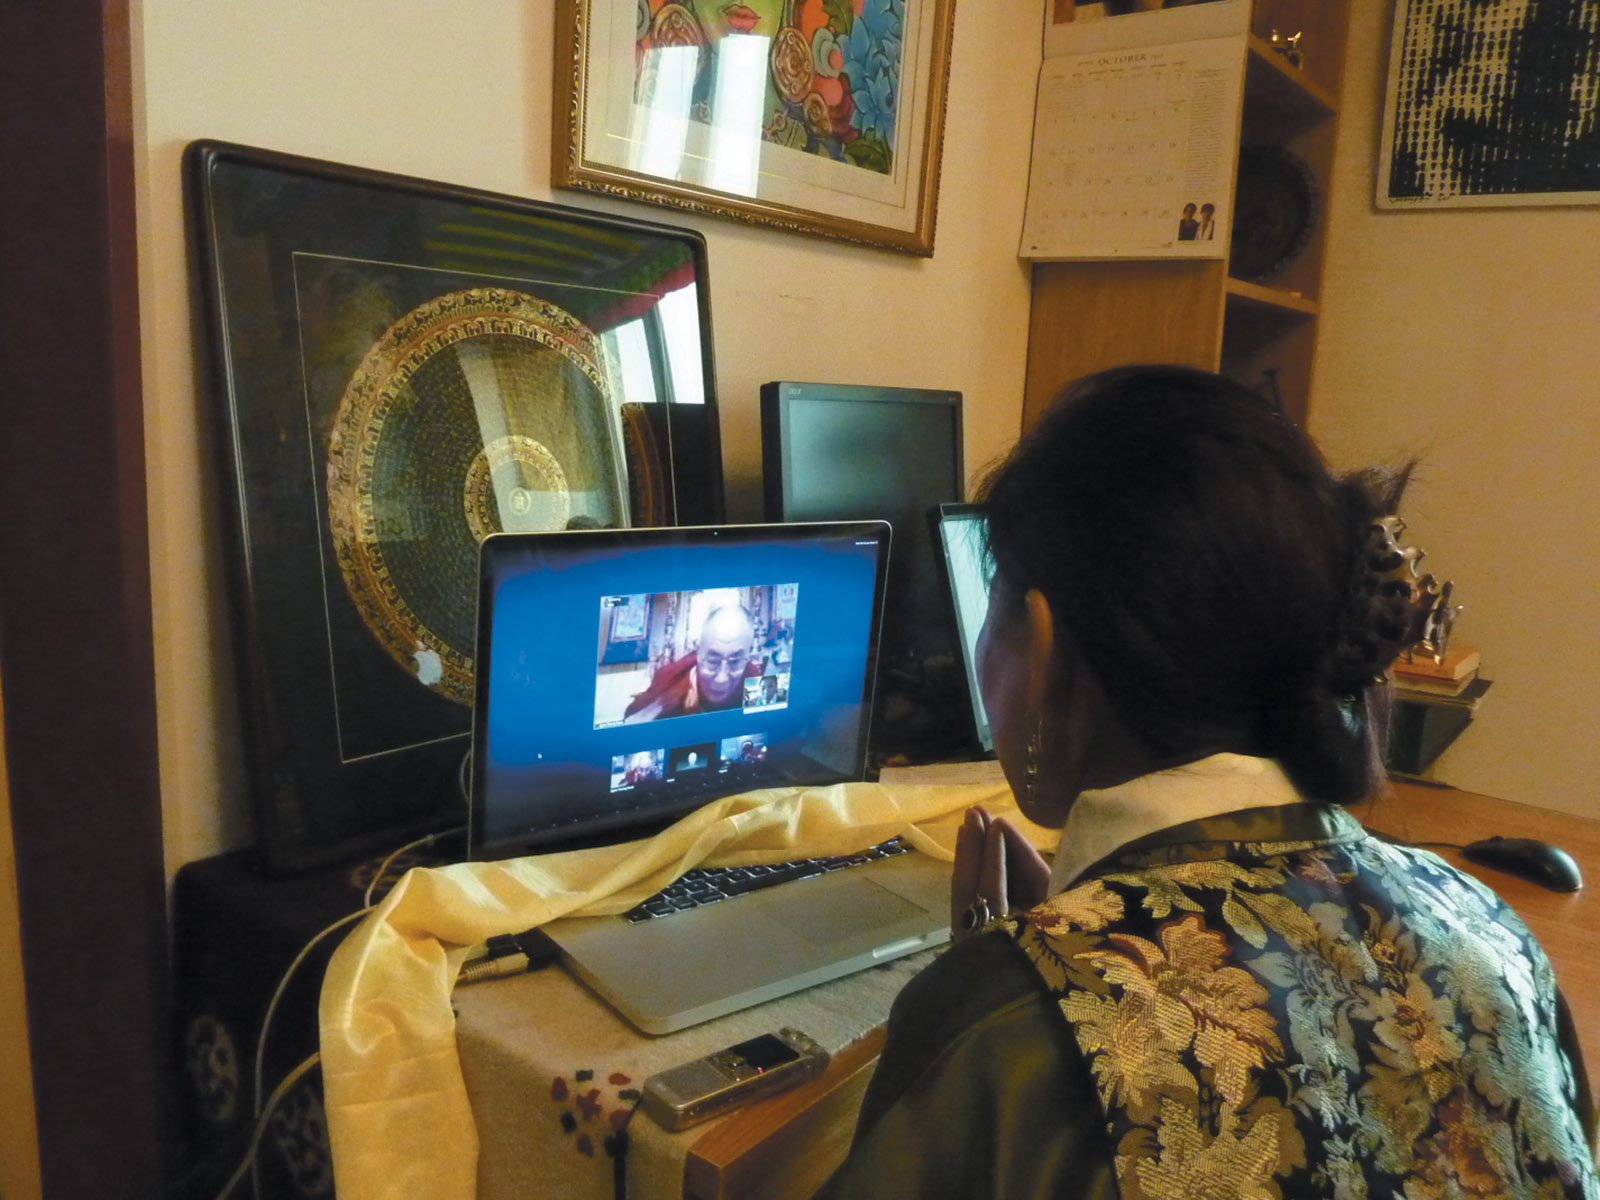 Tsering Woeser meeting the Dalai Lama over the Internet during a video conversation organized by her husband, the Chinese writer Wang Lixiong, and the Chinese human rights lawyers Teng Biao and Jiang Tianyong, Beijing, January 2011